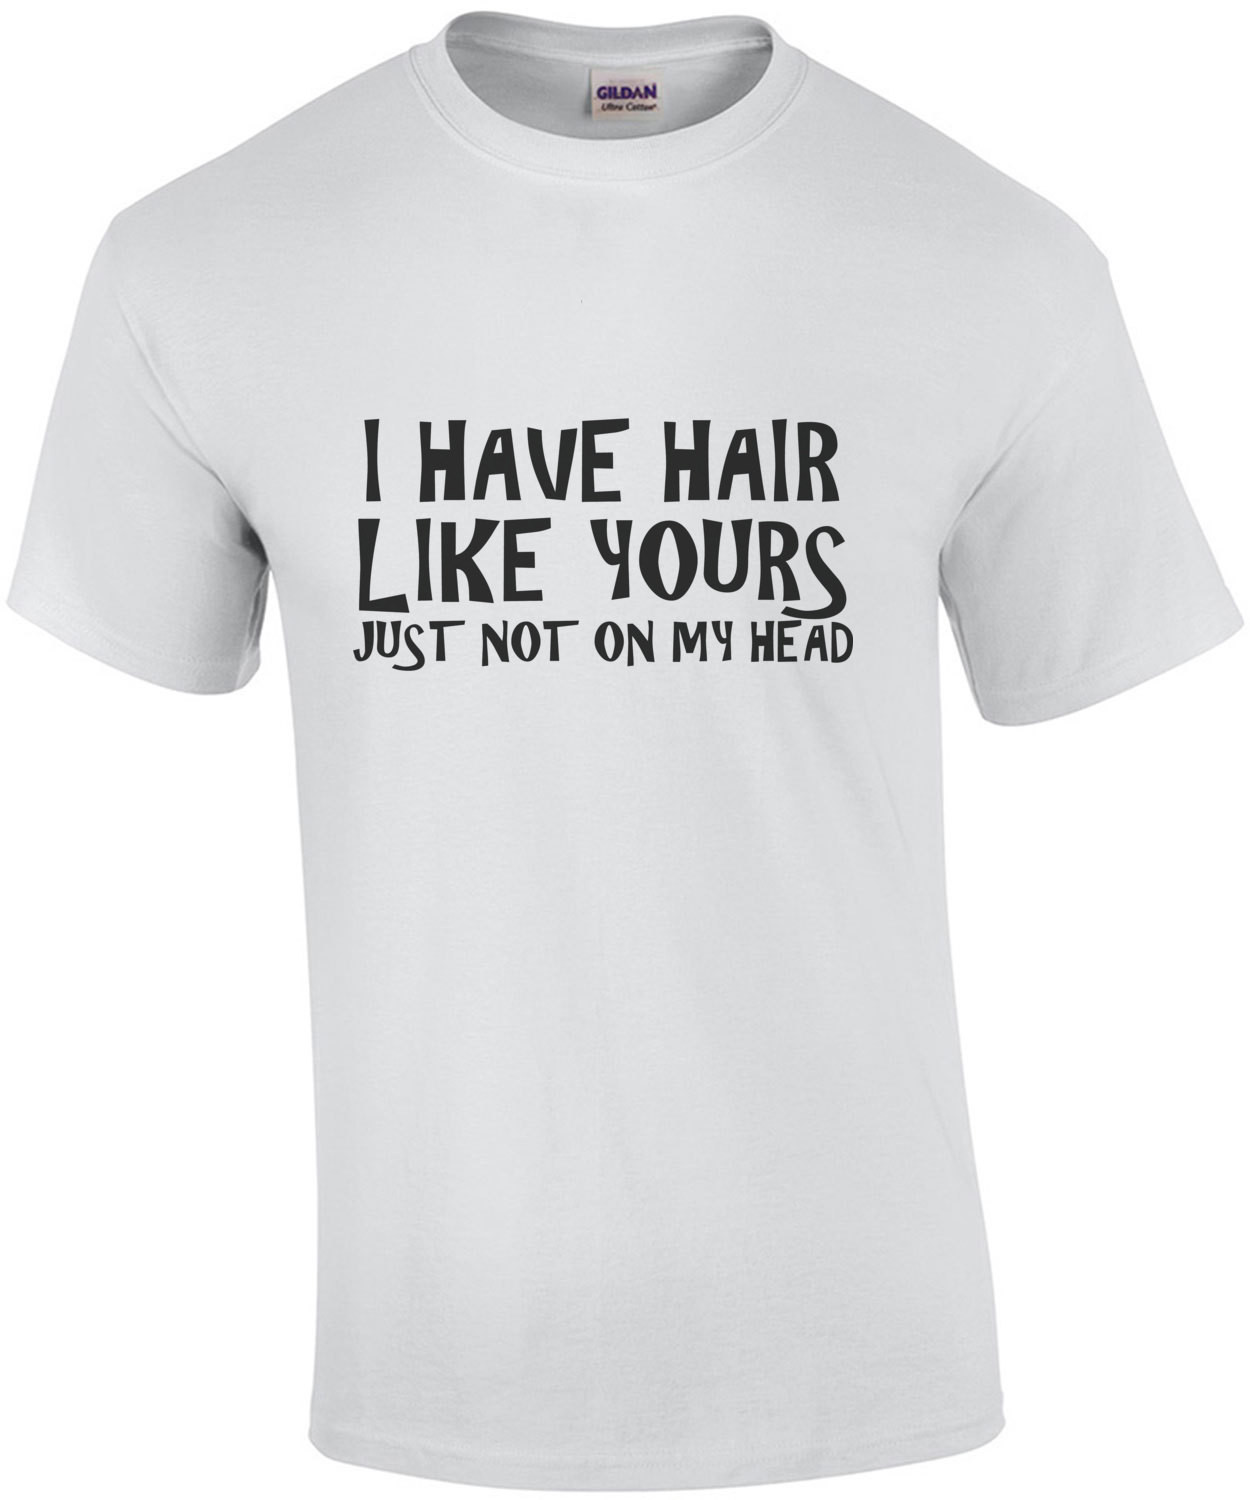 I have hair like yours - just not on my head - bald t-shirt